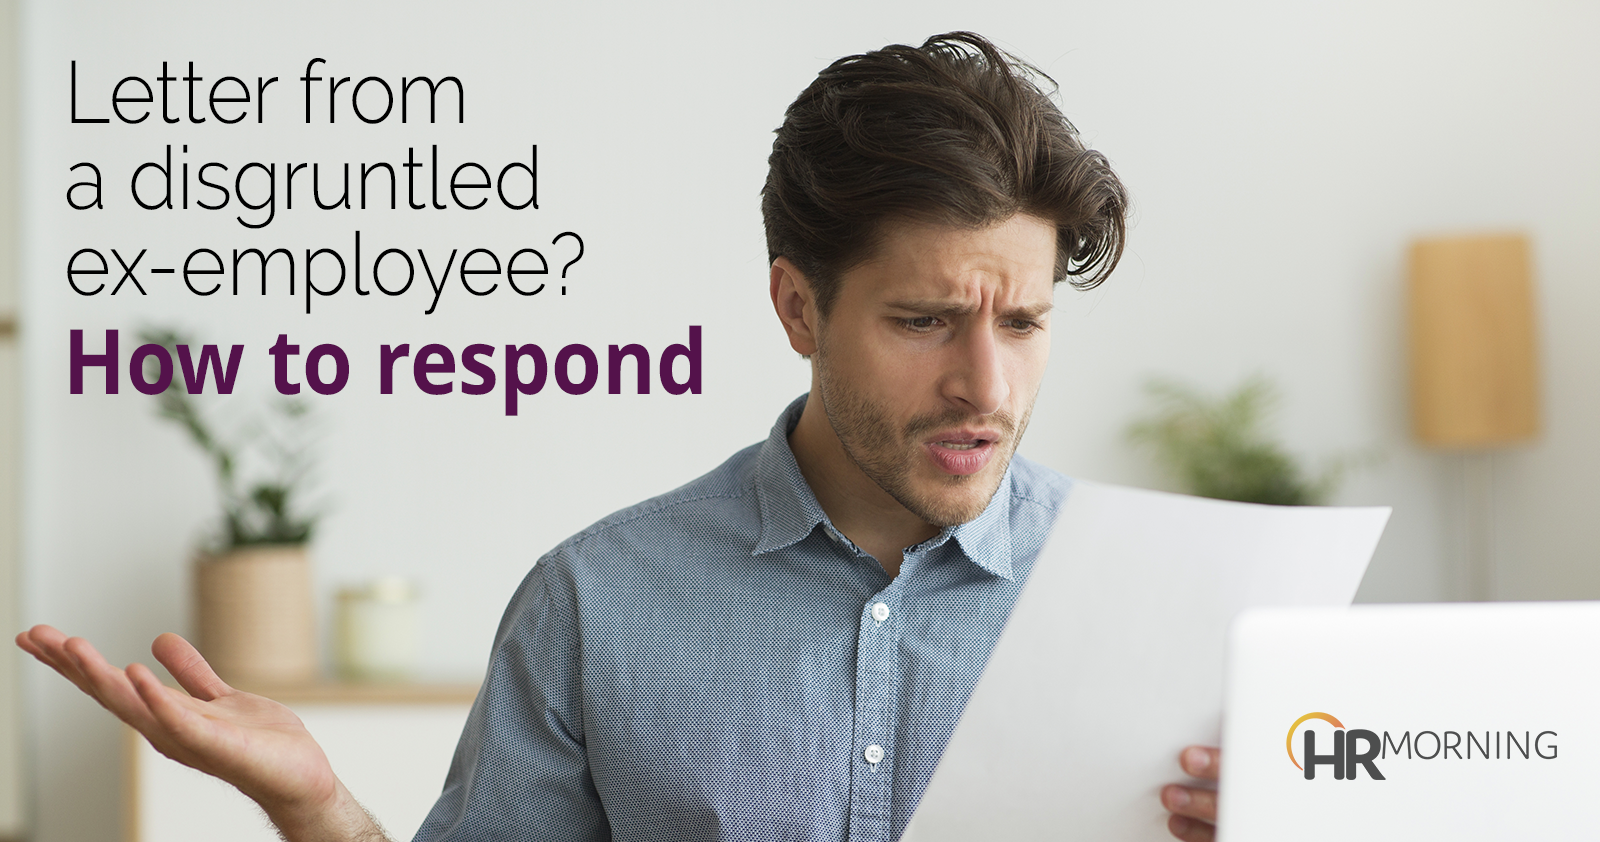 letter from a disgruntled ex-employee how to respond